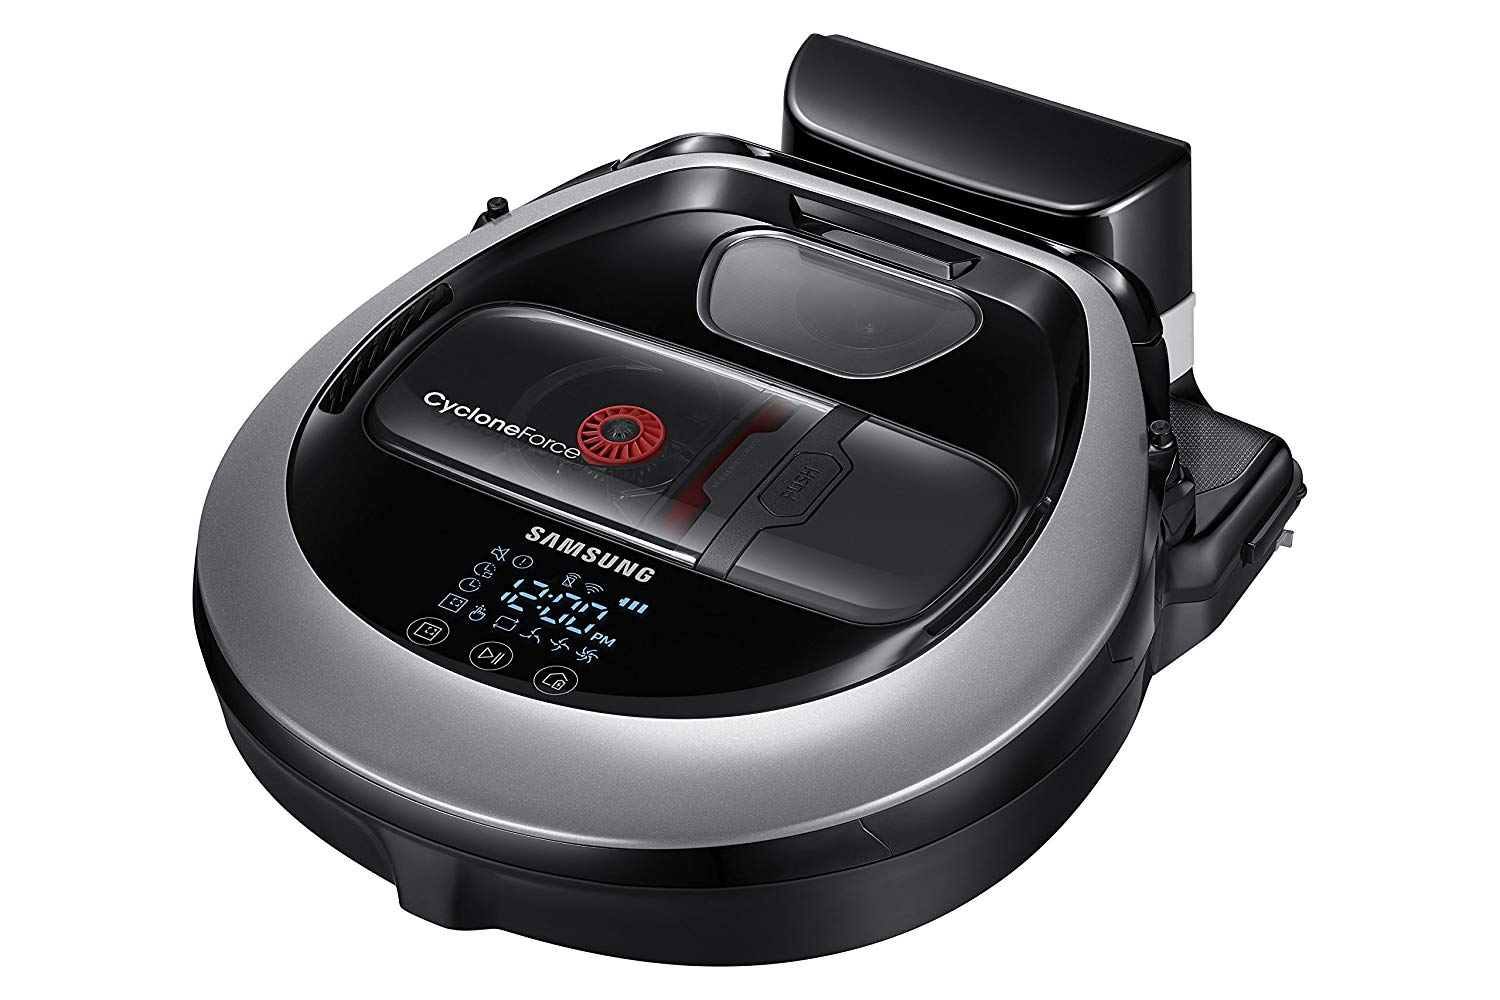 Consumer Reports Best Robotic Vacuums 2018 Buying Guide